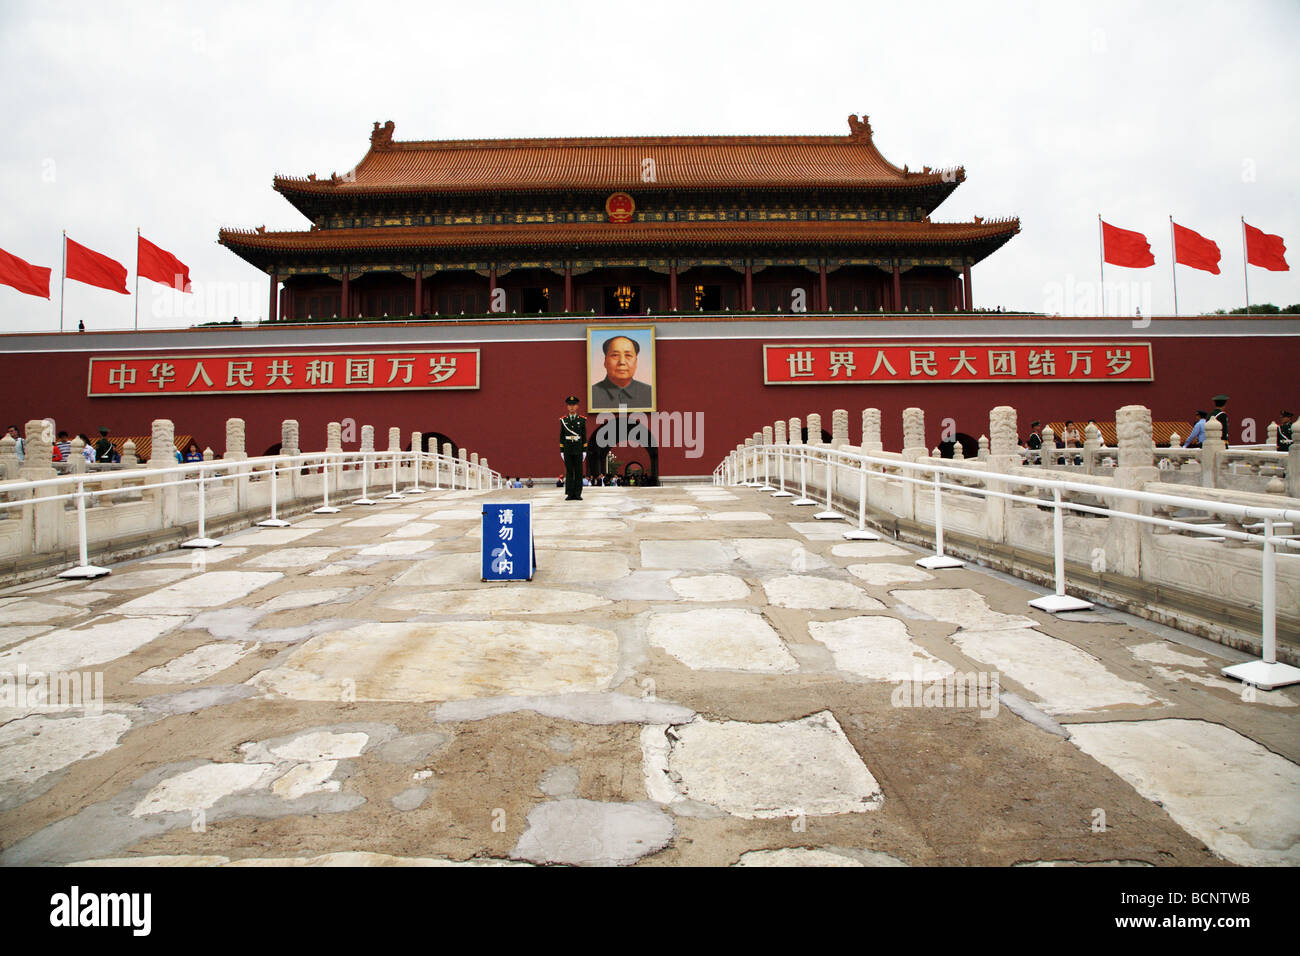 guard standing before the Tian'anmen Rostrum on the Tian'anmen Square, Beijing, China - Stock Image